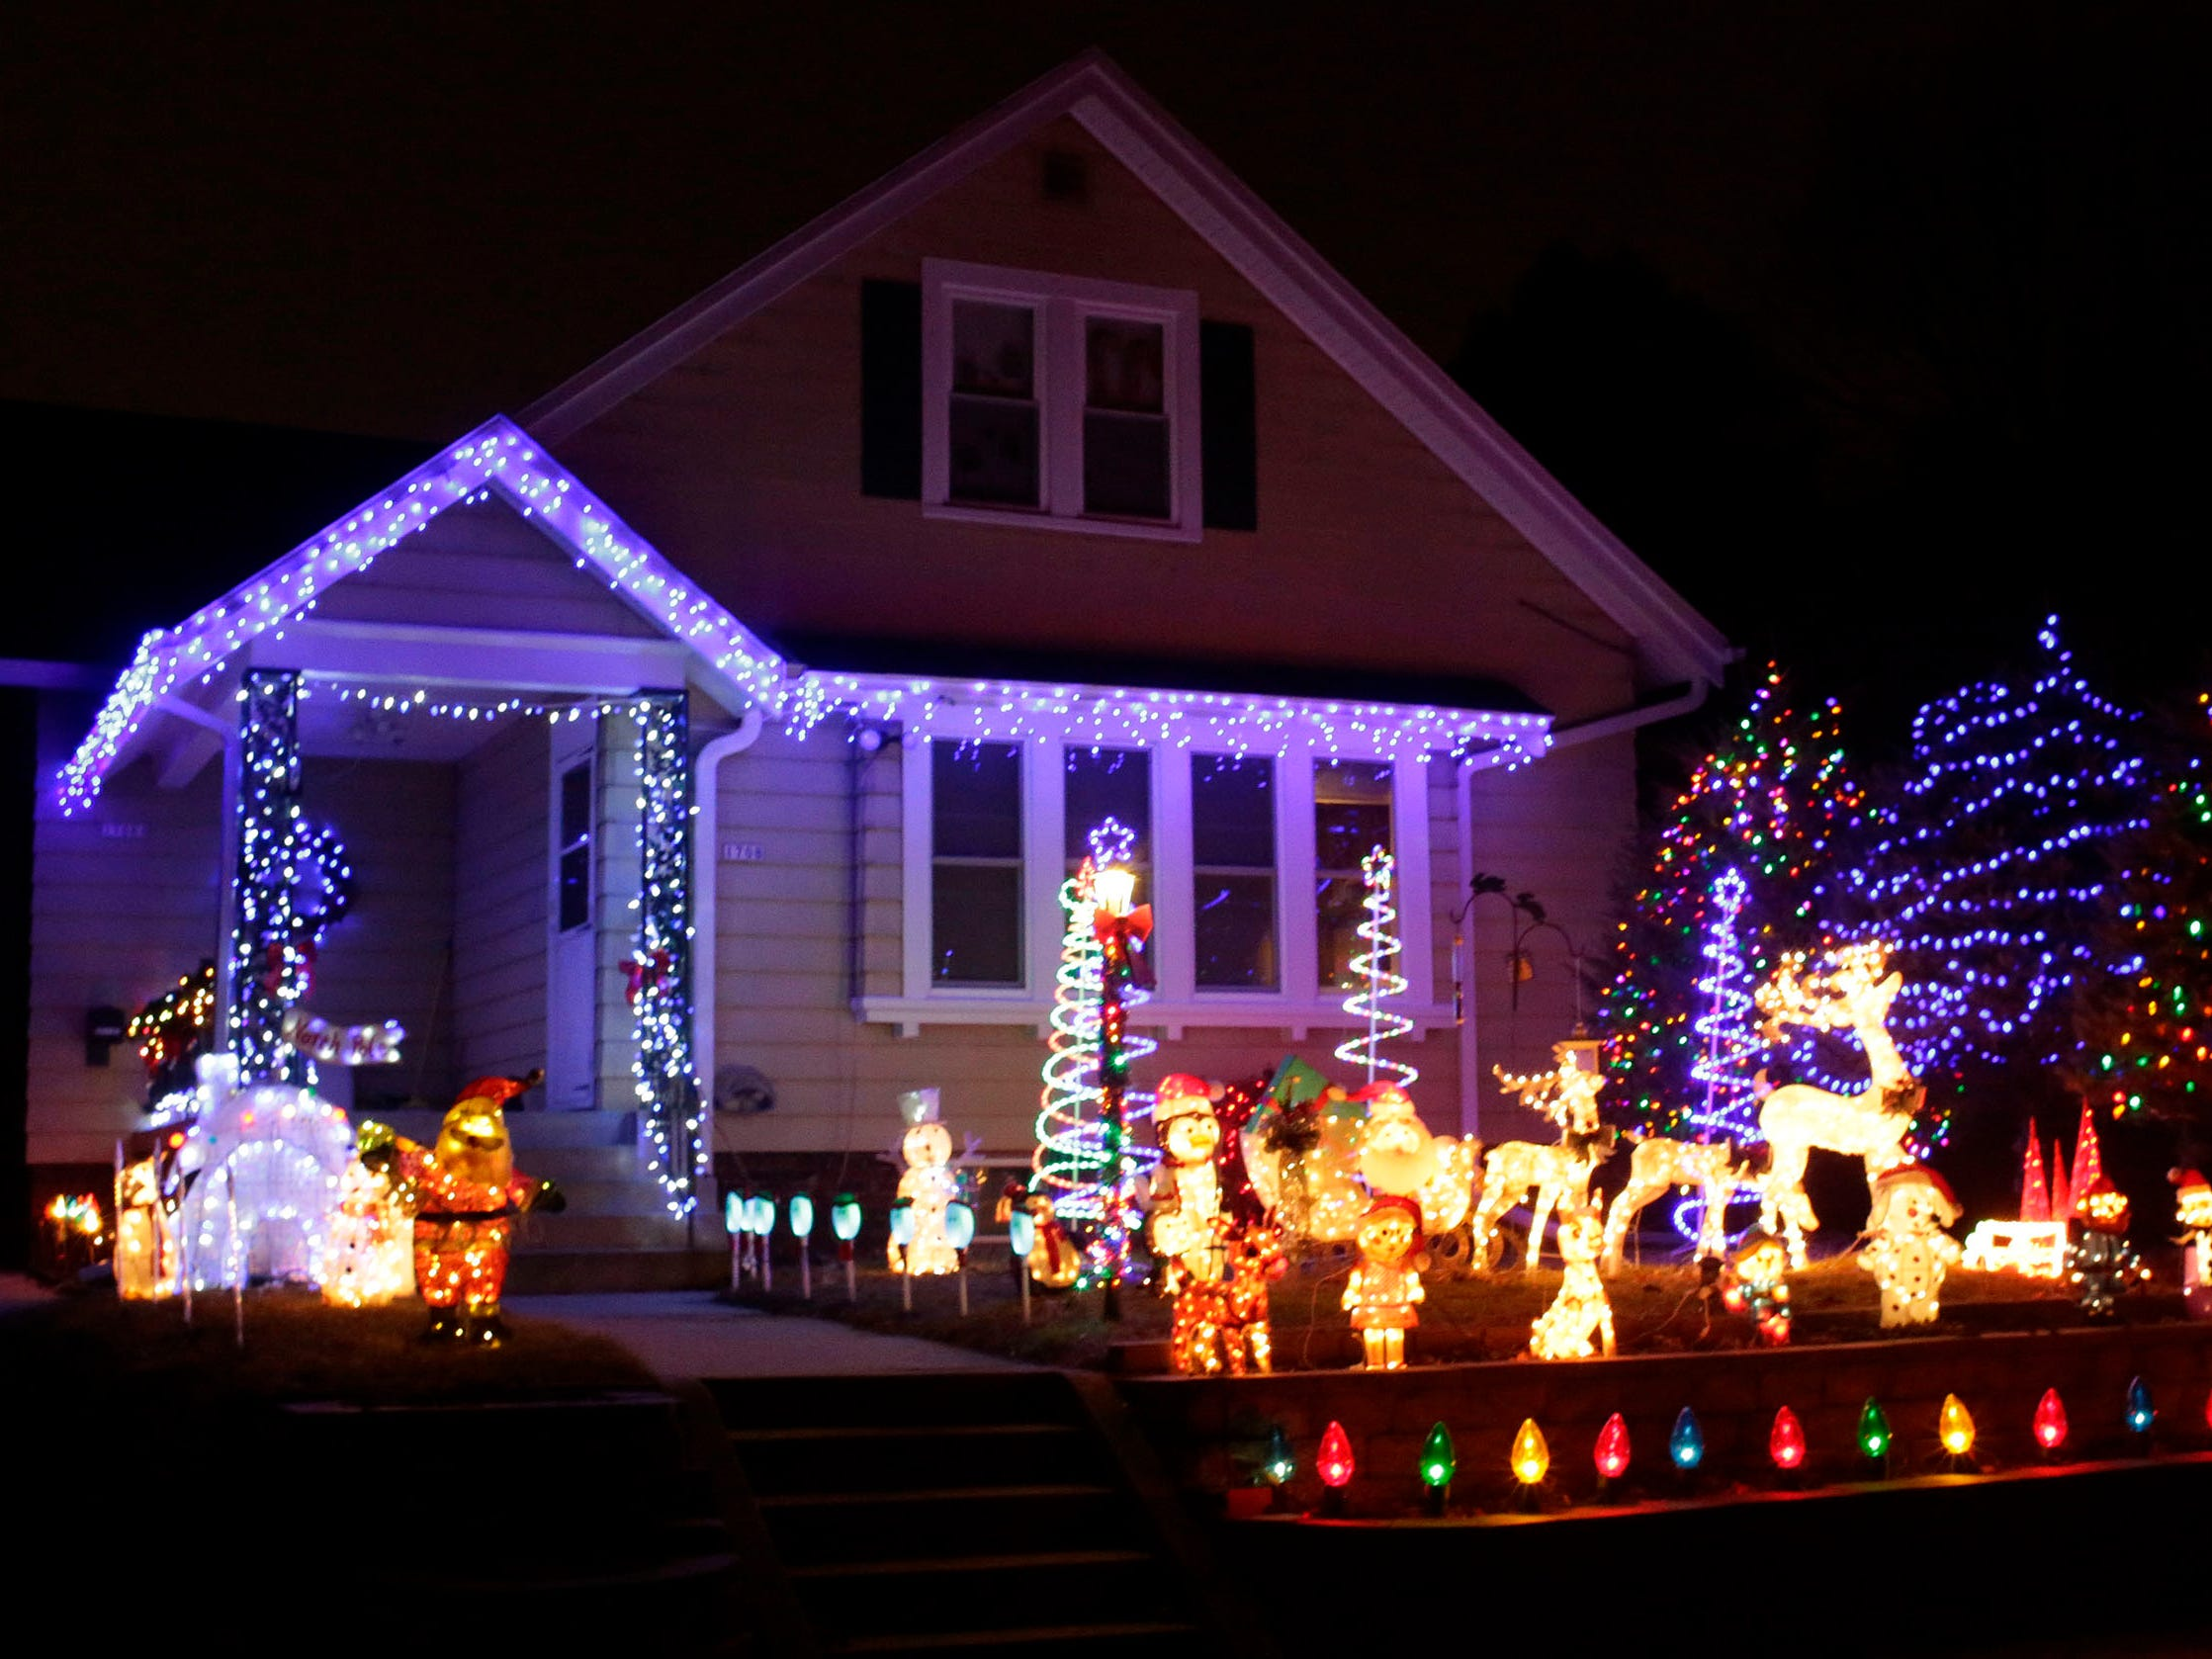 A home is decorated for the holidays on North 4th Street, Thursday, December 20, 2018, in Sheboygan, Wis.